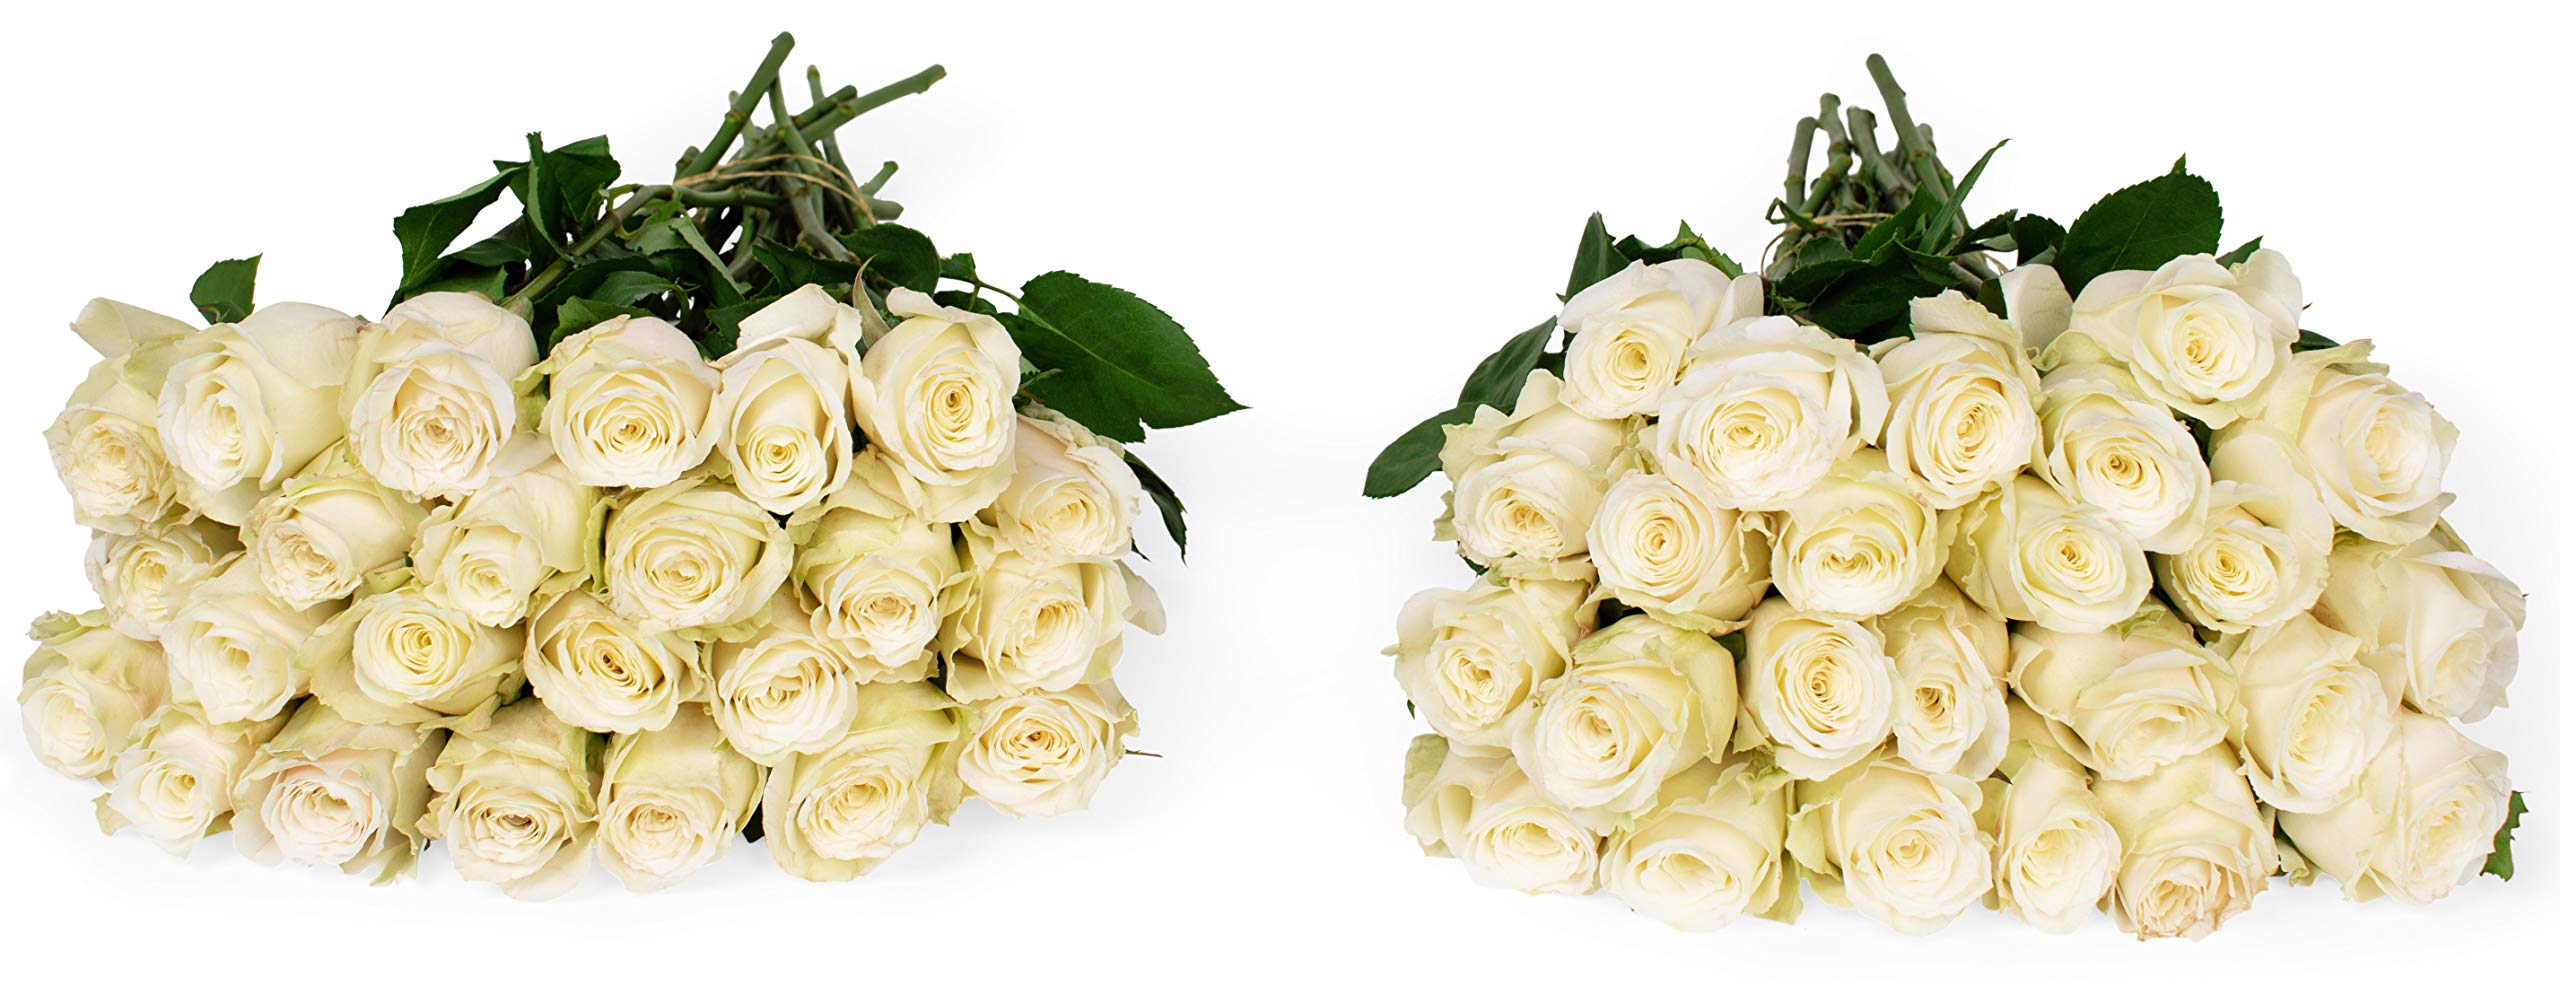 Benchmark Bouquets 50 White Roses Farm Direct (Fresh Cut Flowers) by Benchmark Bouquets